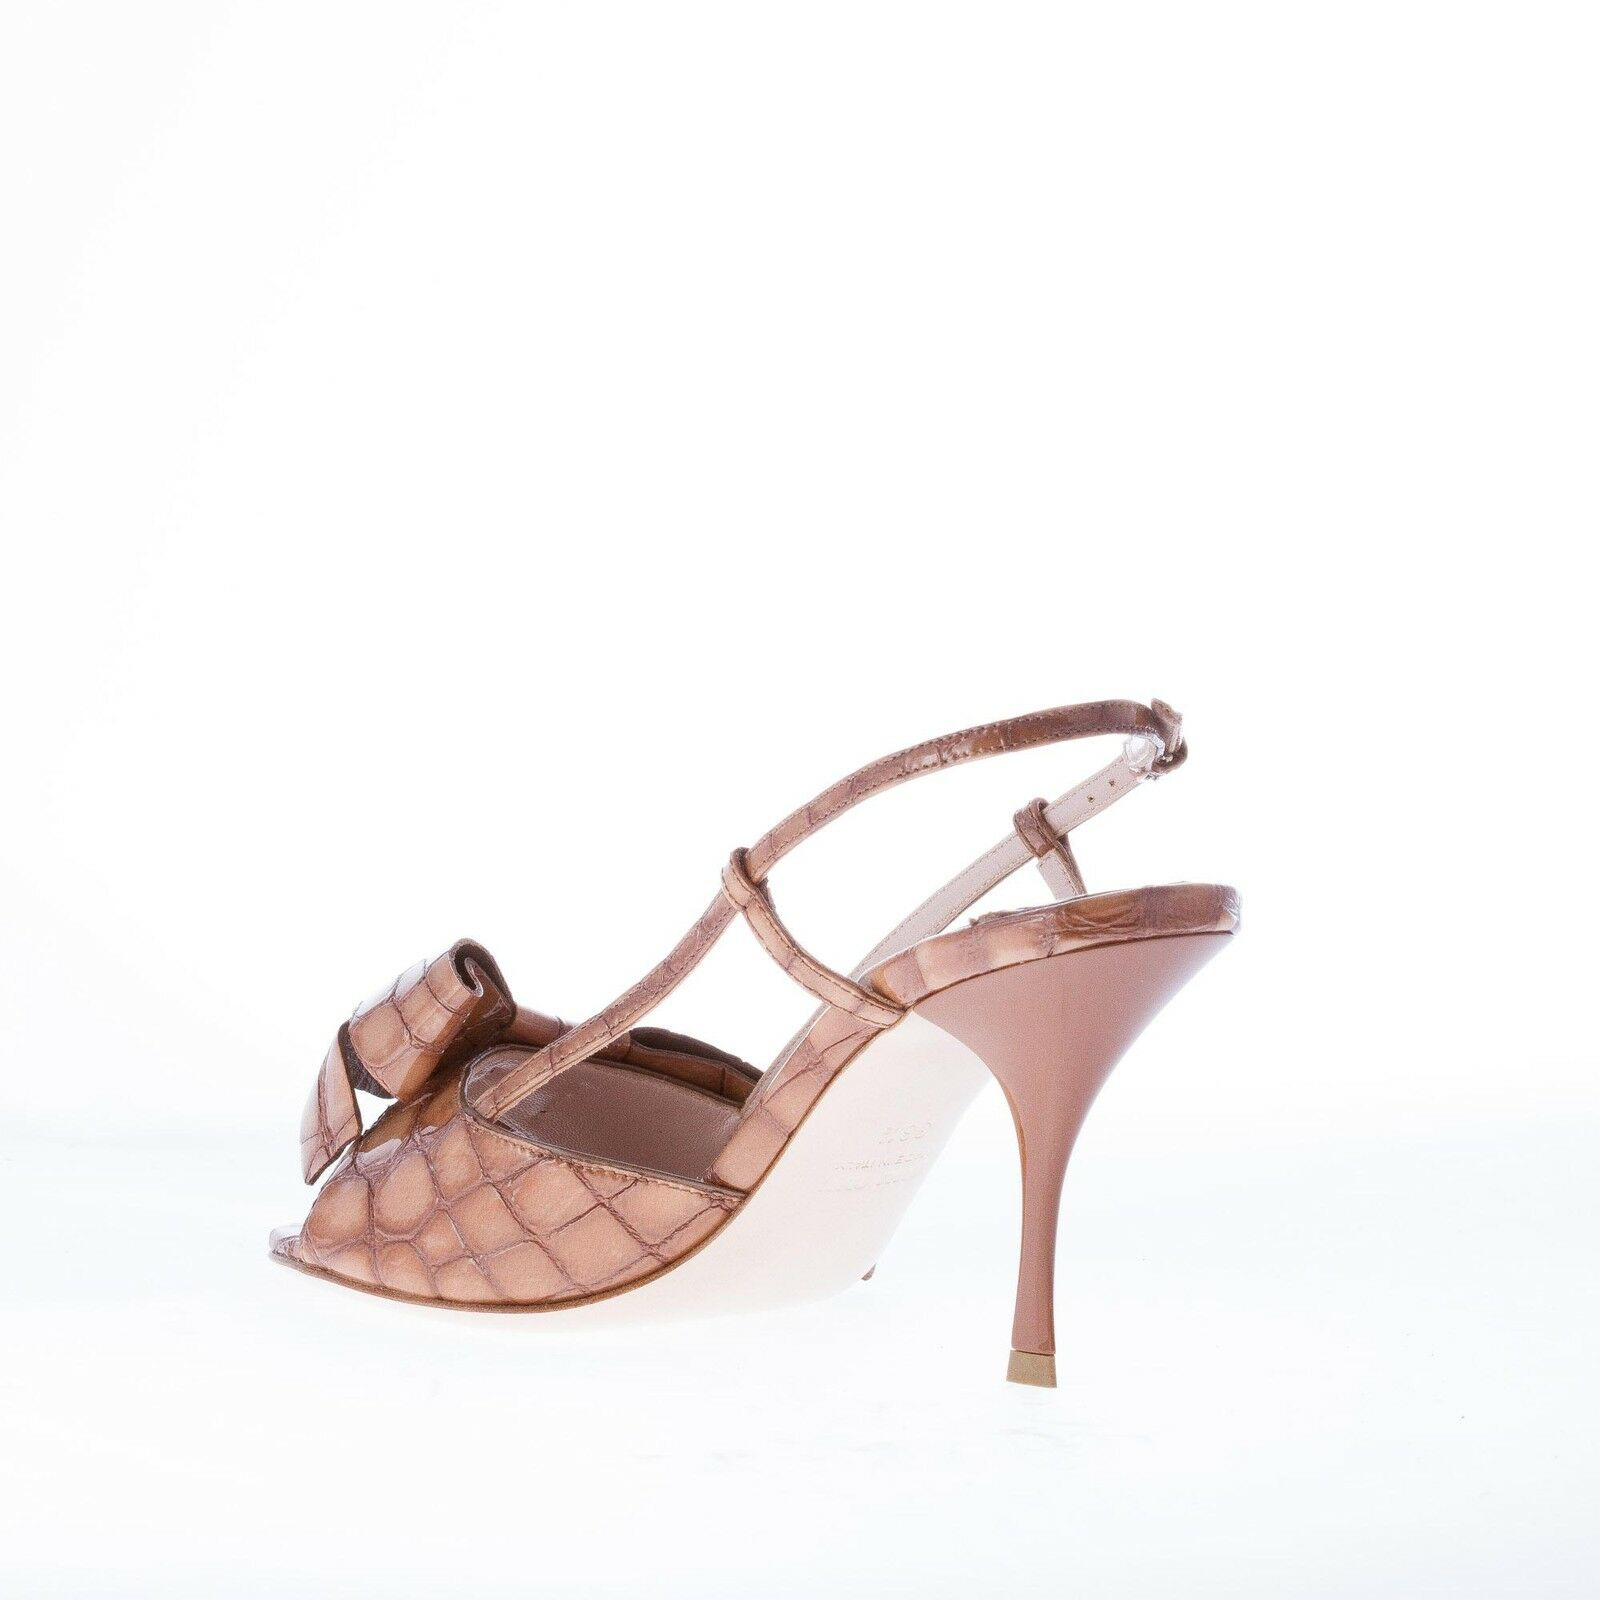 MIU MIU women shoes Brown croco embossed patent leather sandal sandal sandal with adorning bow 3394a9